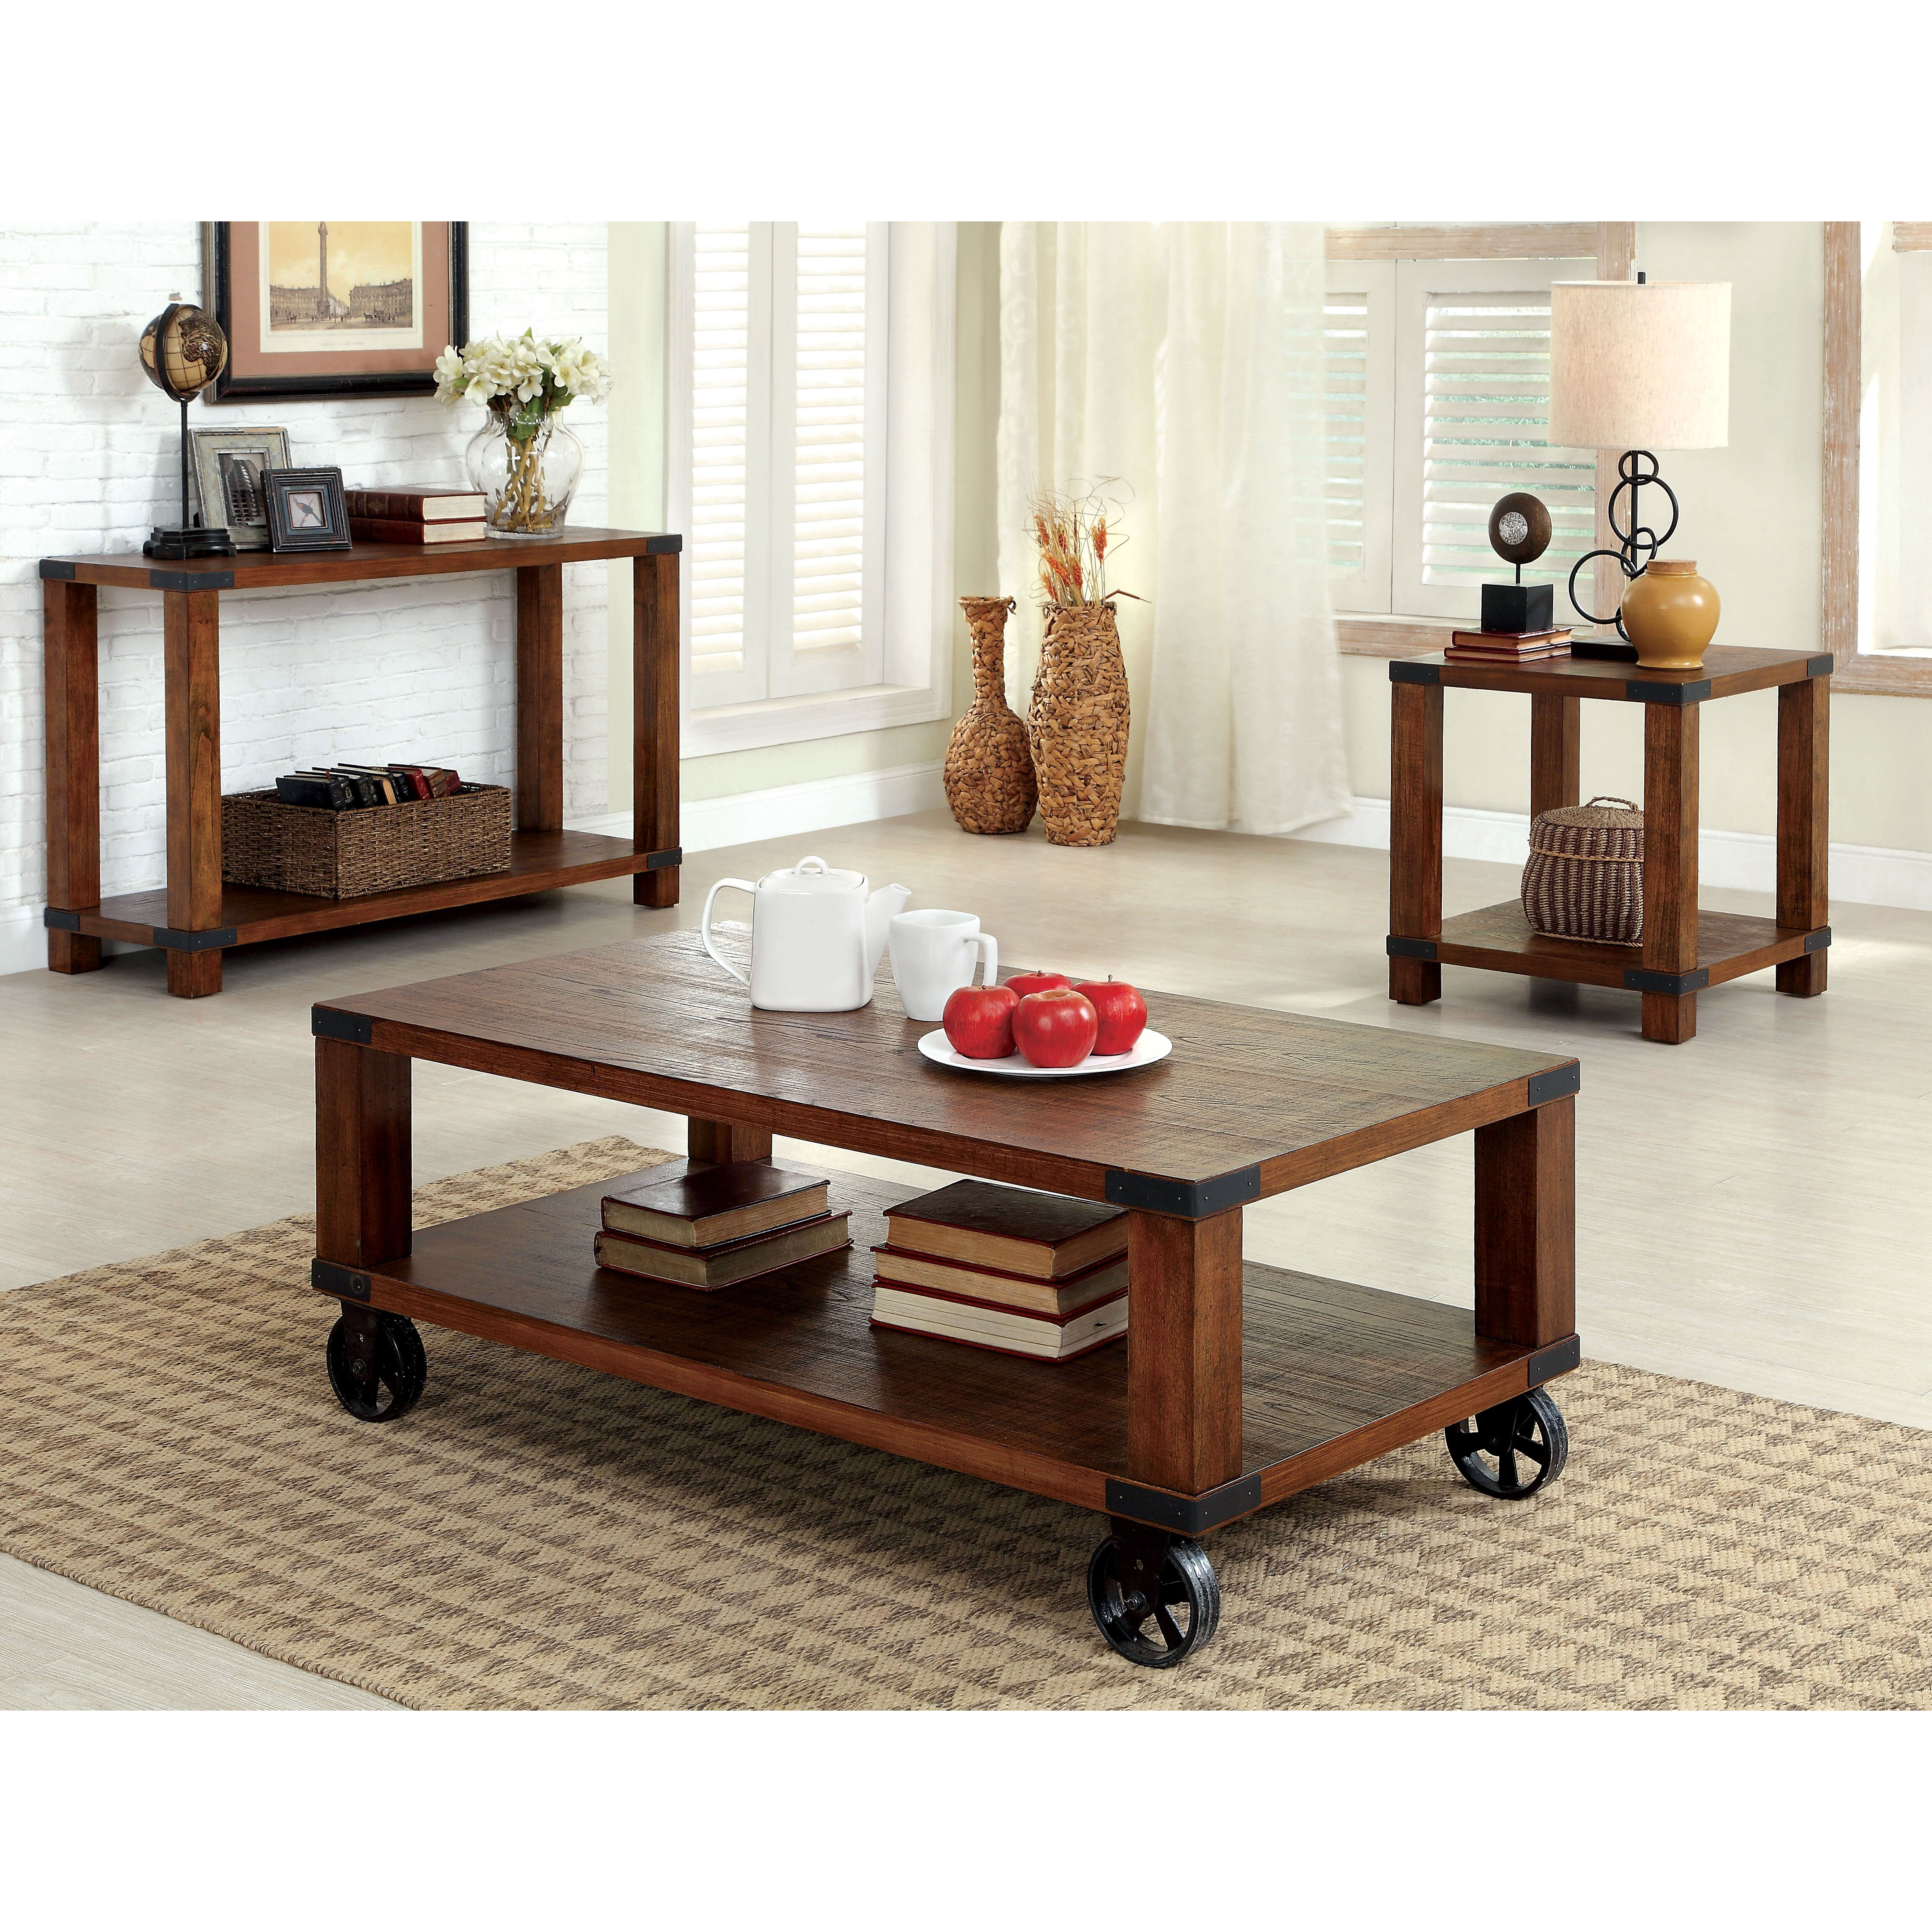 hokku designs howie coffee table reviews wayfair. Black Bedroom Furniture Sets. Home Design Ideas